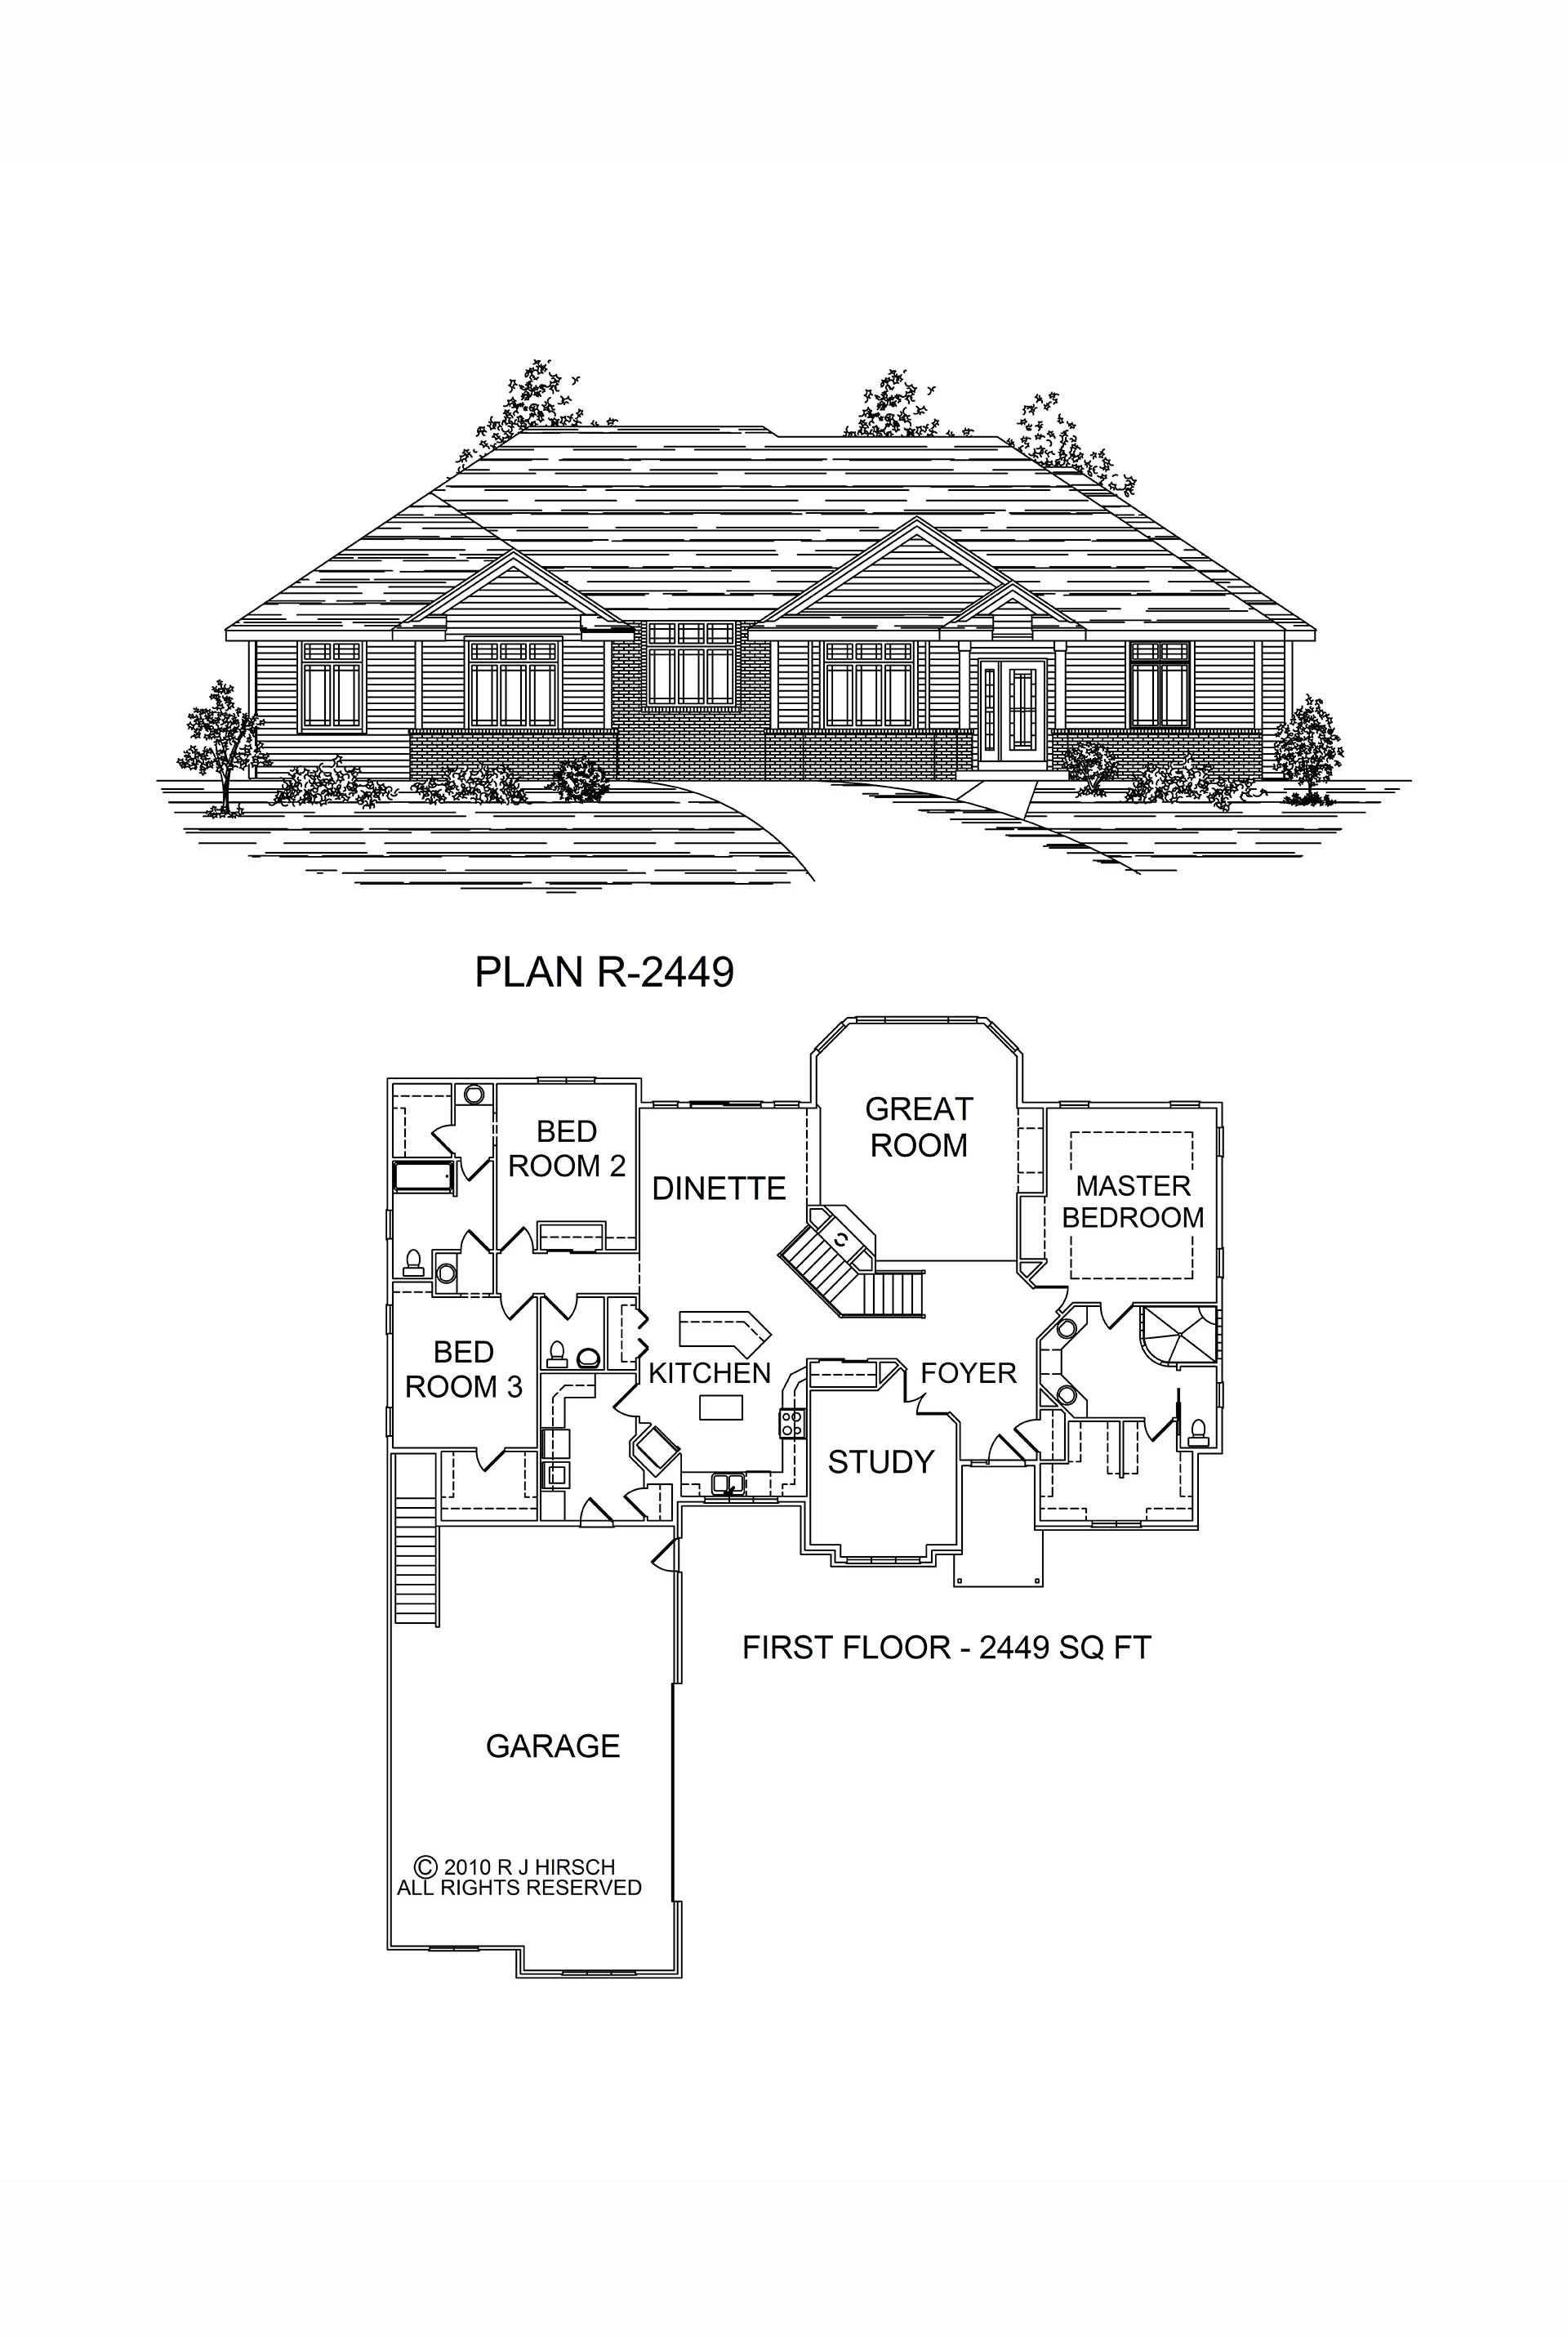 Garage Builders Janesville Wi Rj Hirsch Builder Home Plans Design Homes New Home Plans Janesville Wi